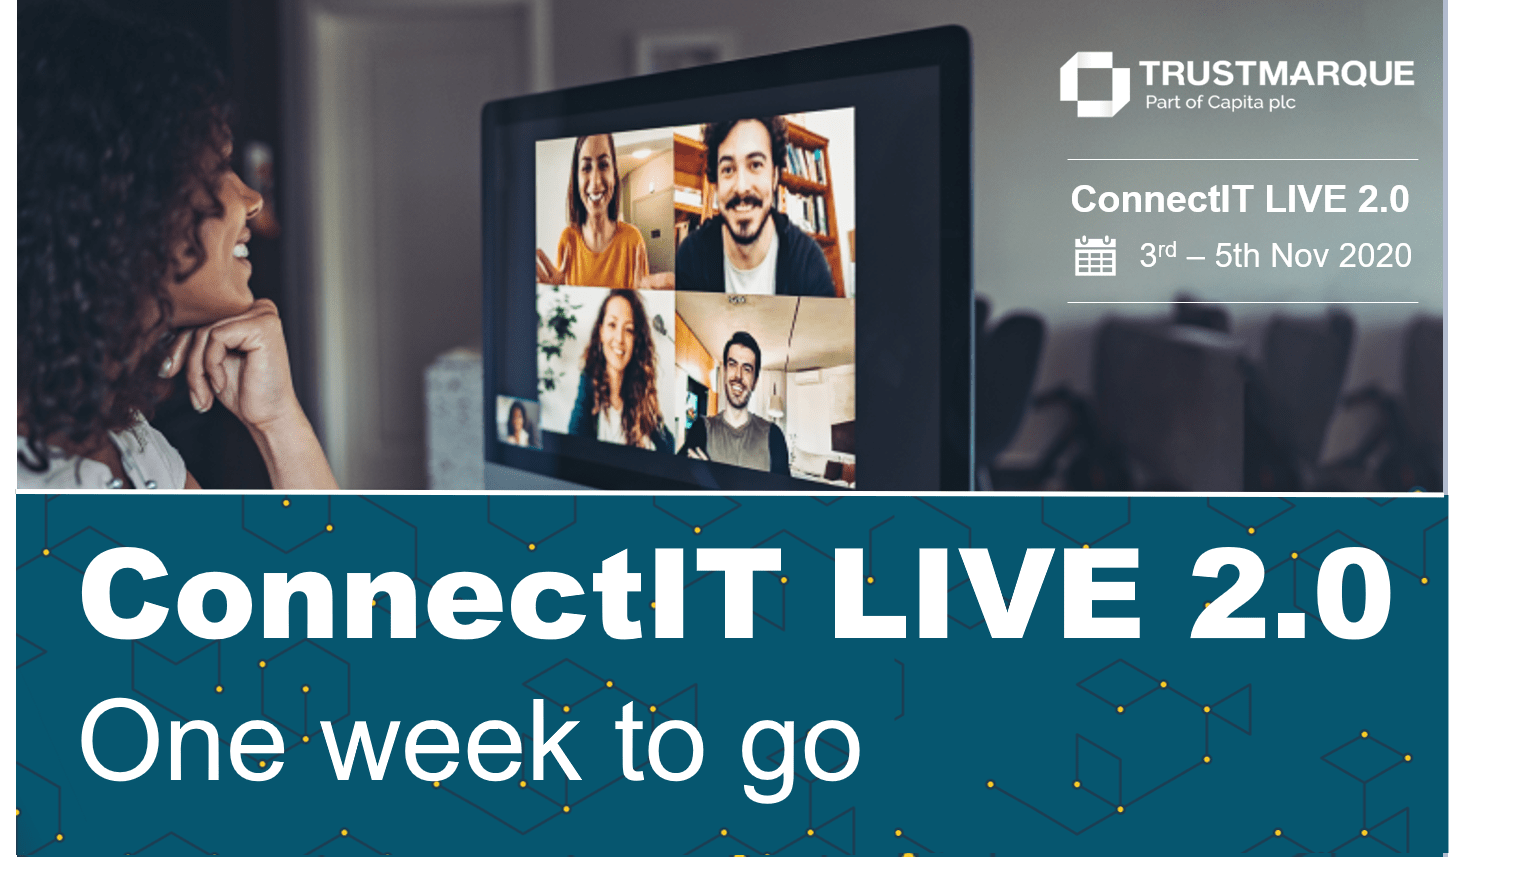 ConnectIT LIVE One week to go